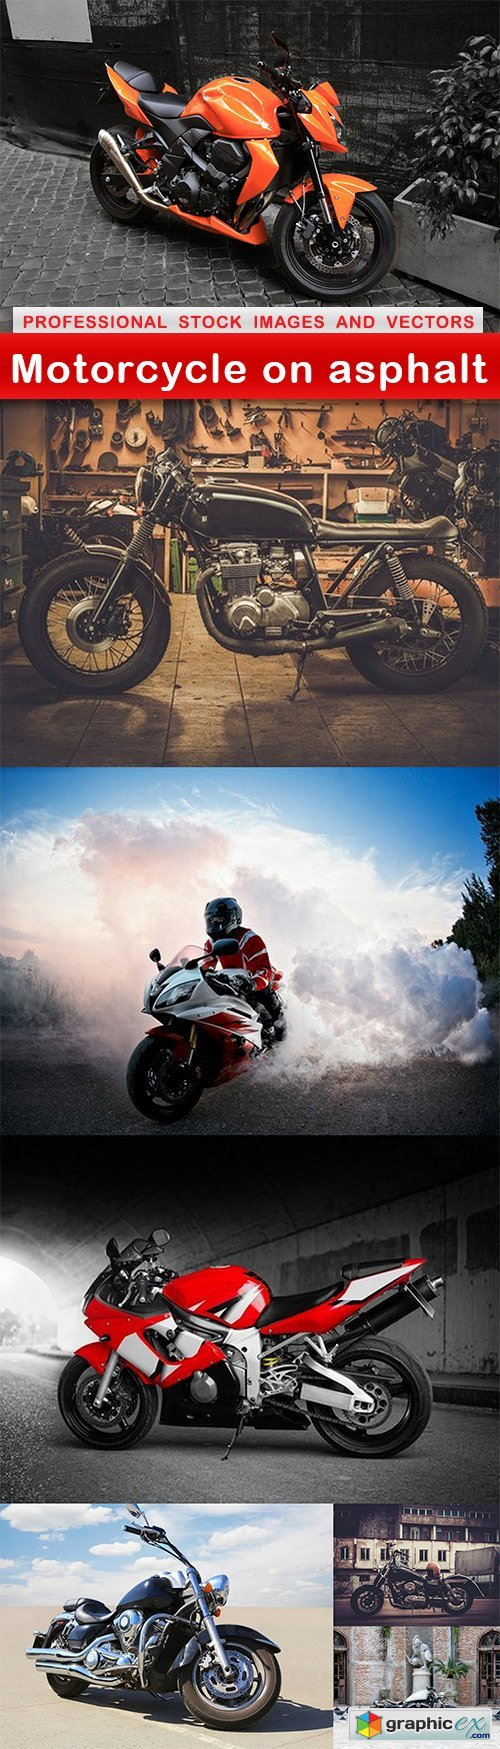 Motorcycle on asphalt - 7 UHQ JPEG